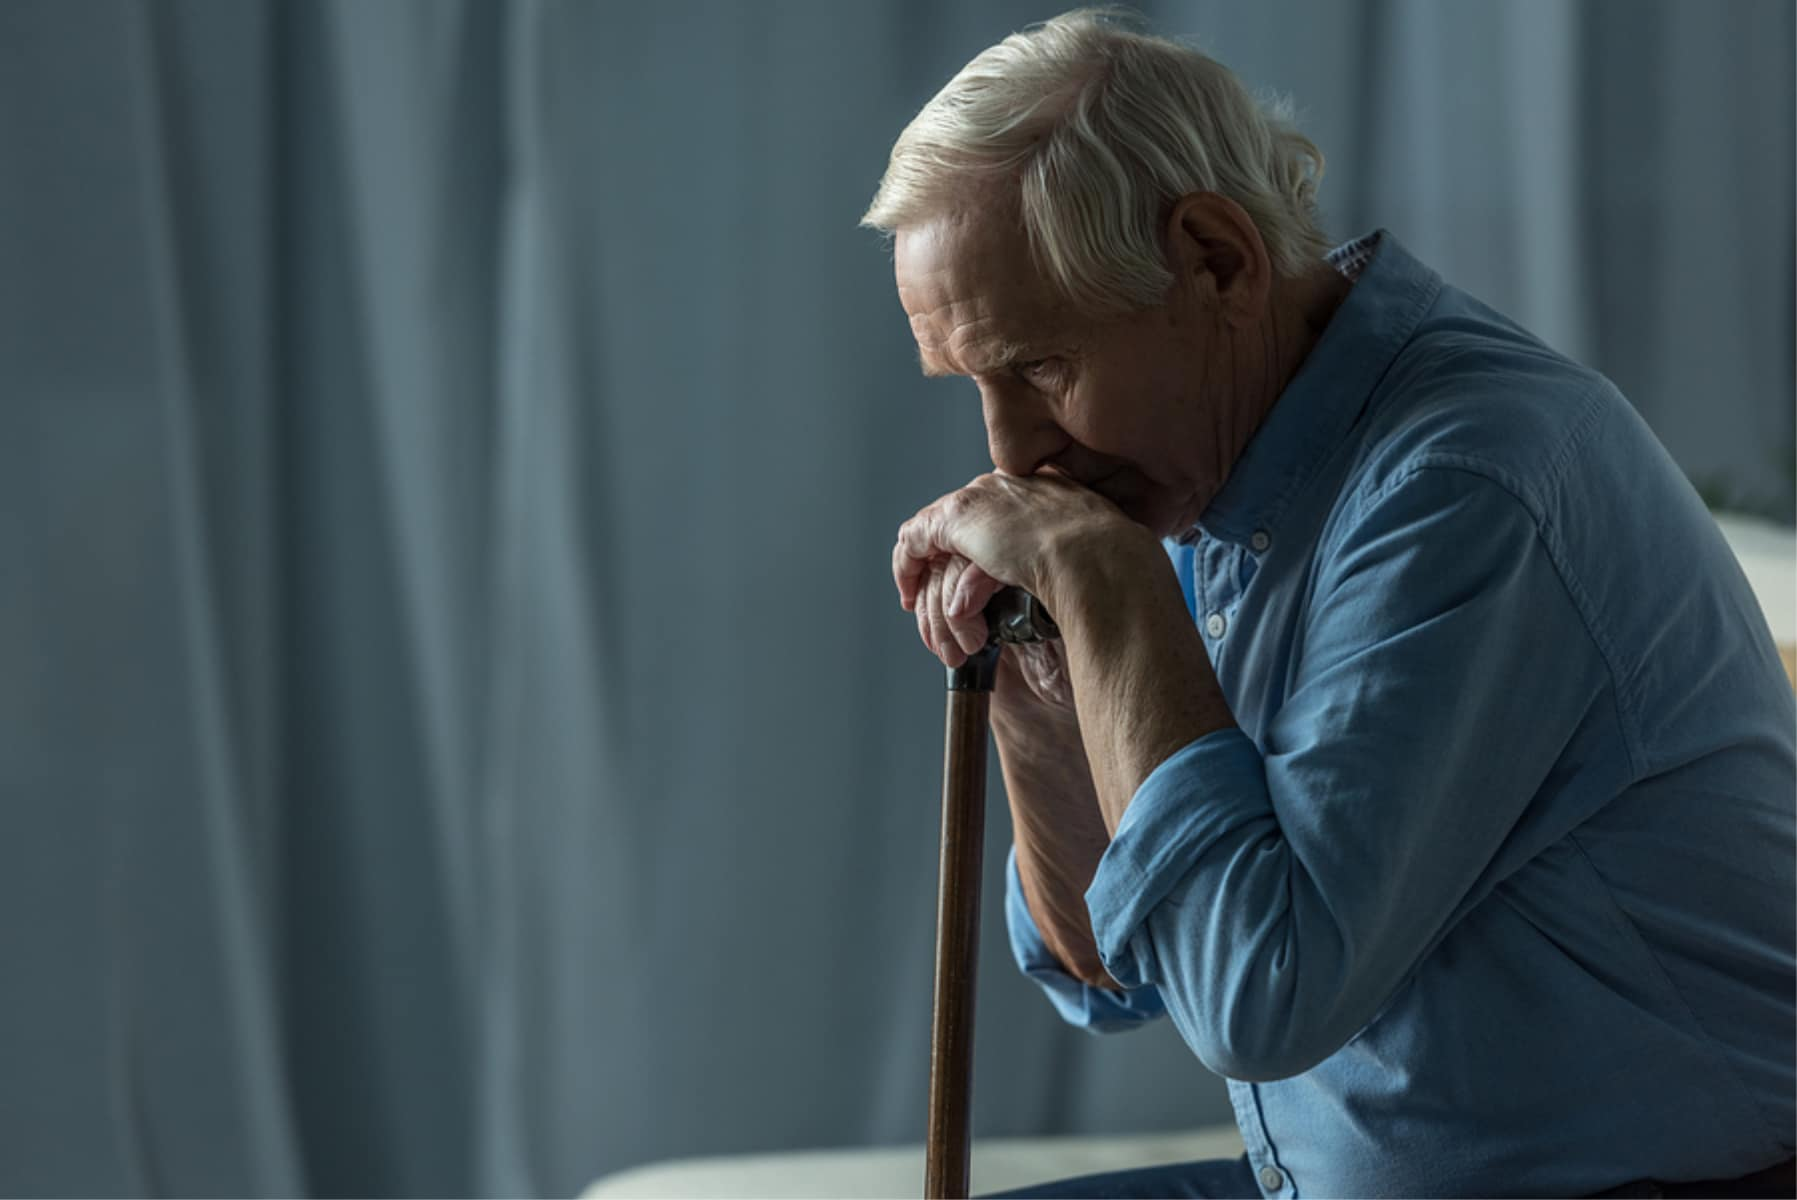 Homecare in Buford GA: Reasons for Loneliness